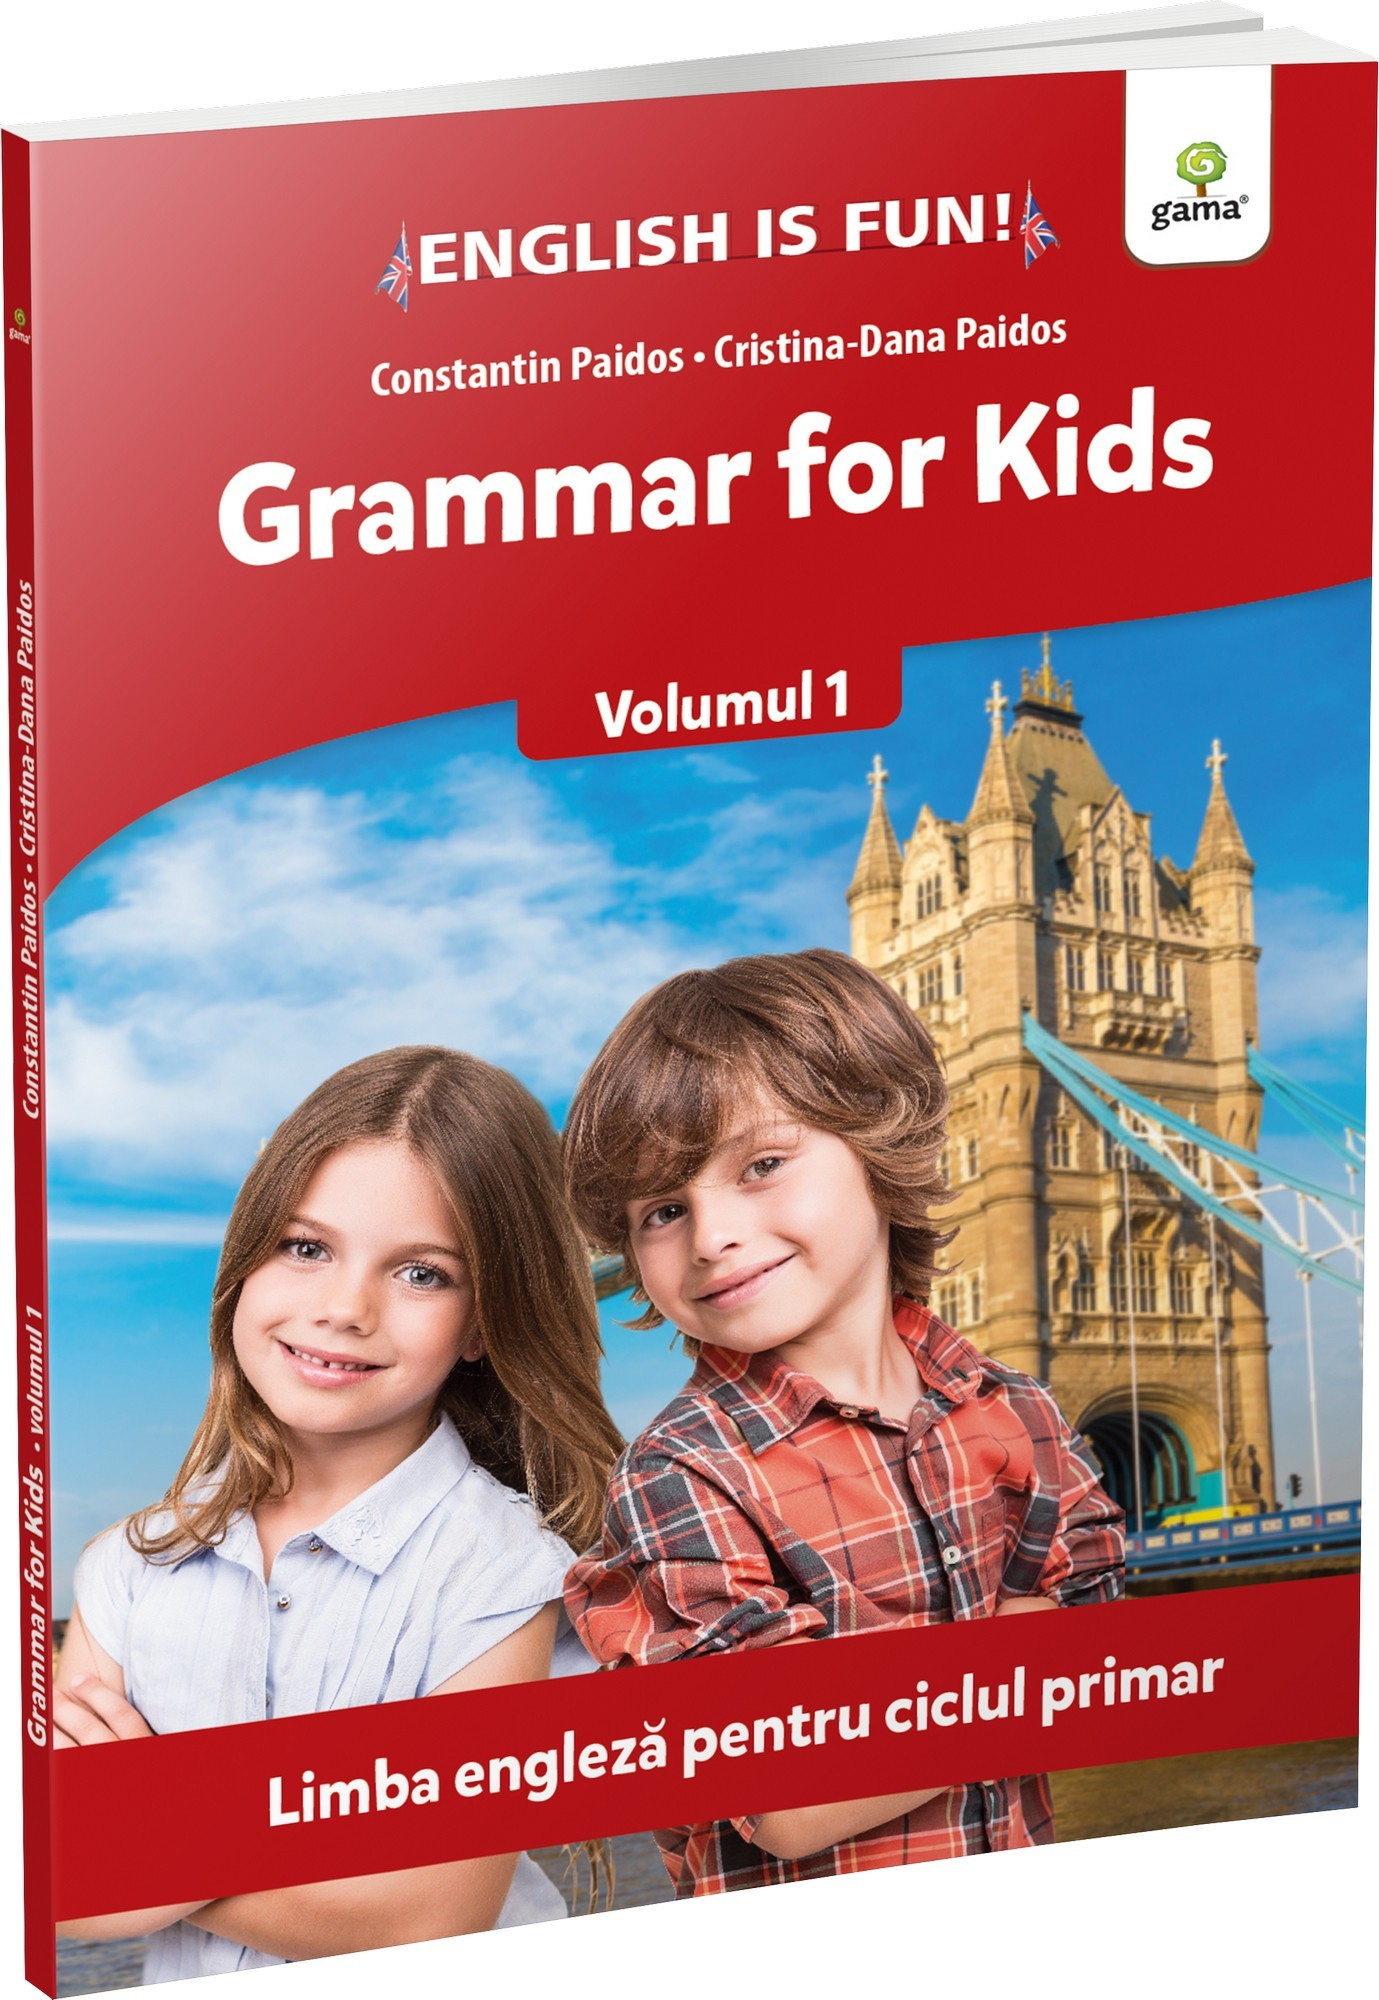 Grammar for Kids - Volumul 1 thumbnail